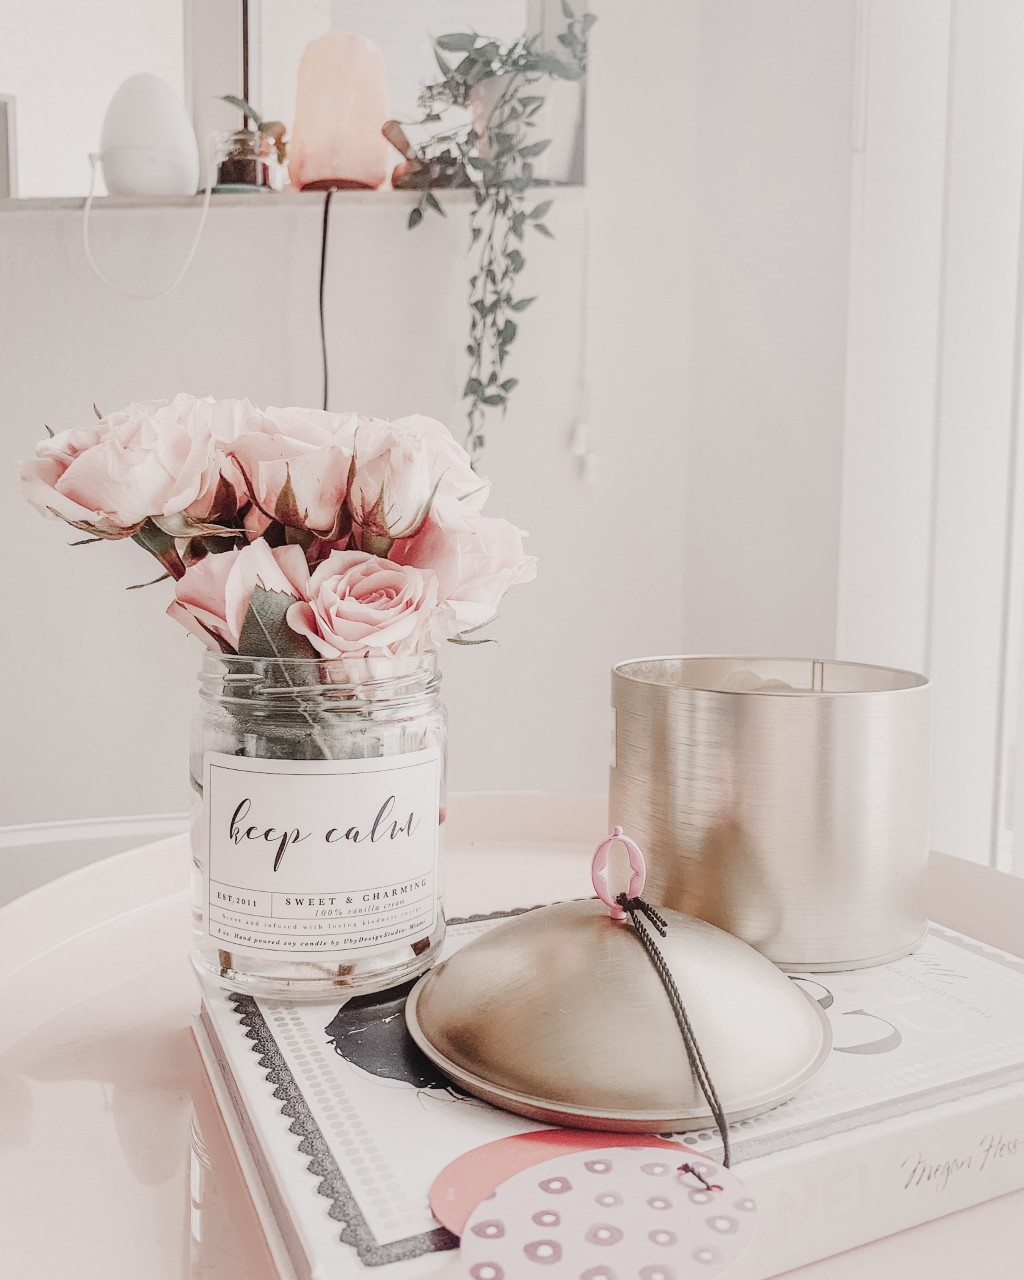 Desk with light pink flowers in a jar that says keep calm